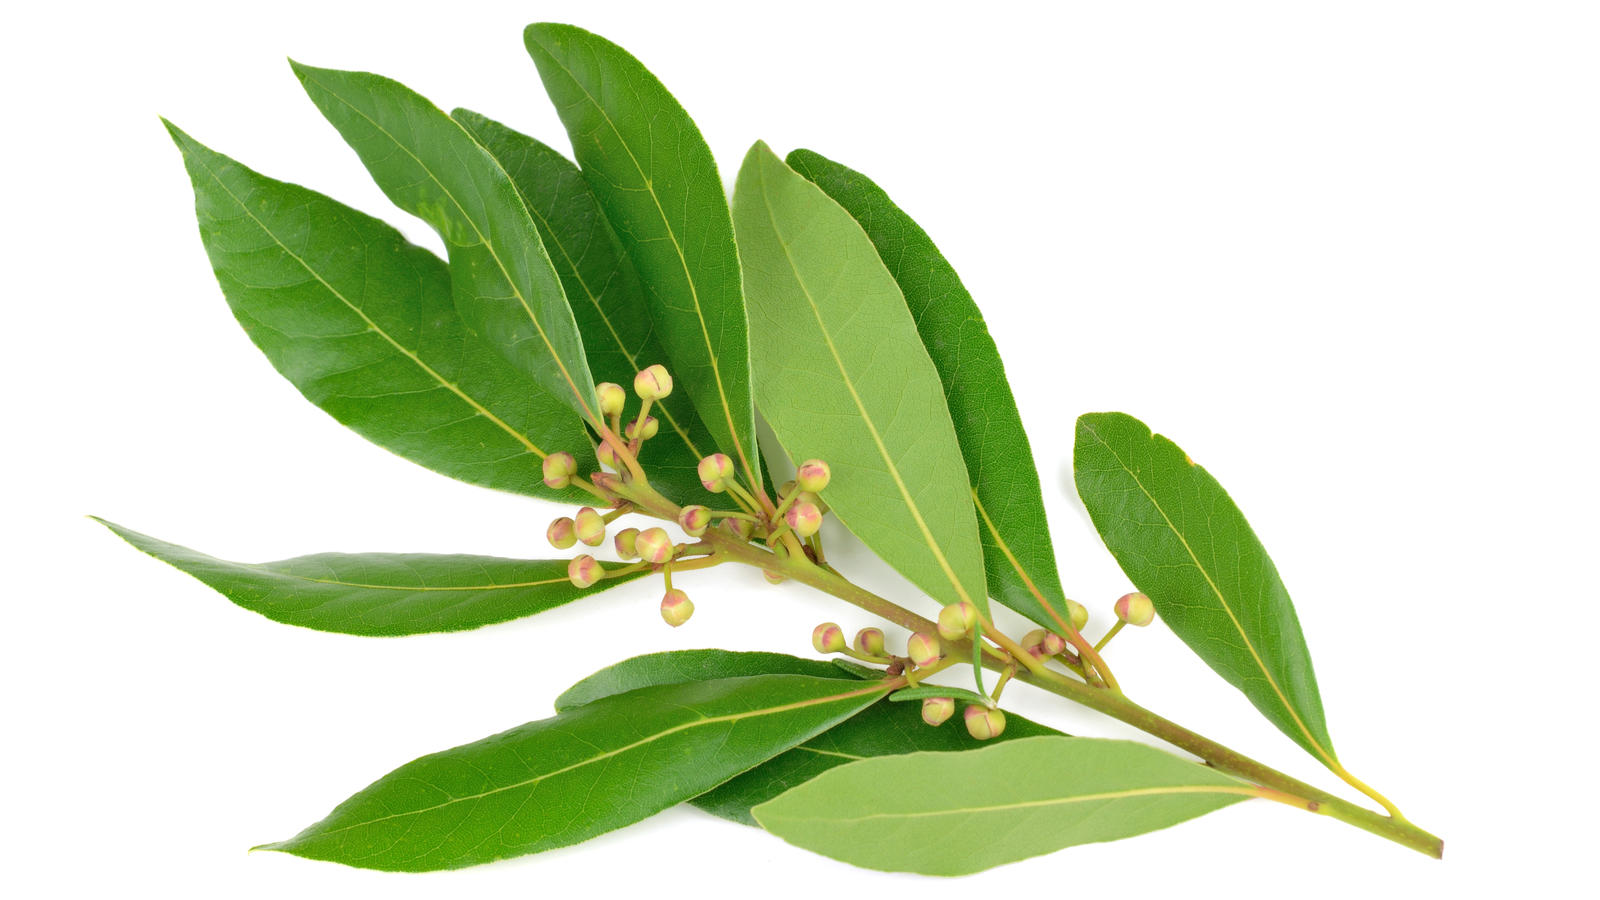 Bay leaves ingredients discover good food channel - Cook bay leaves ...